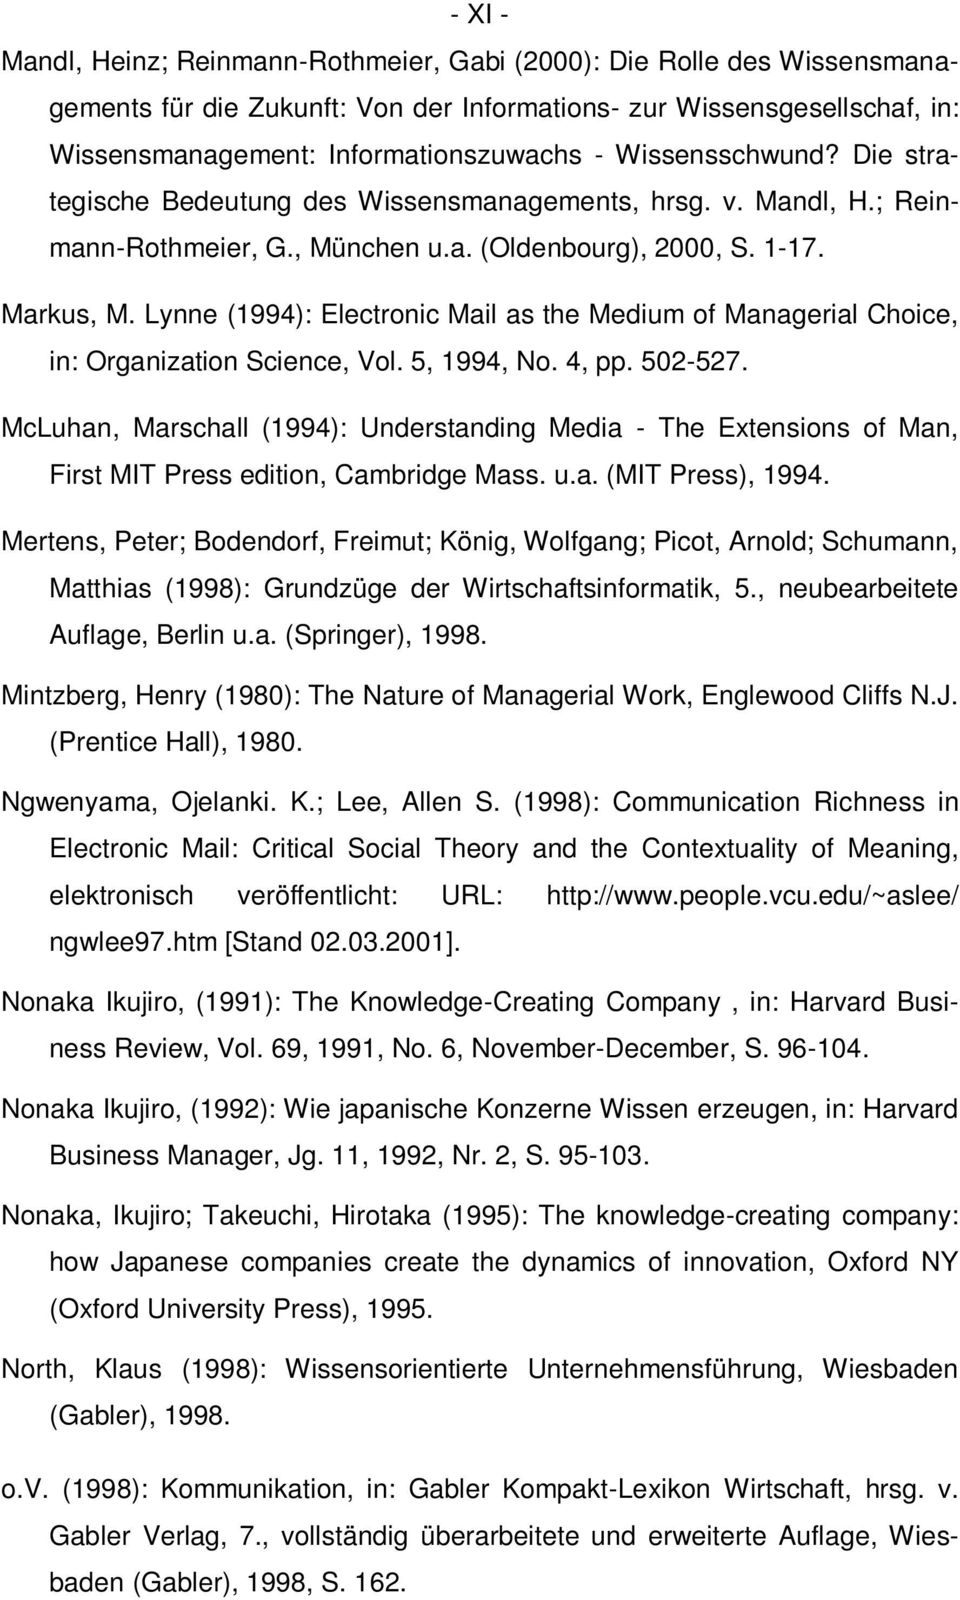 Lynne (1994): Electronic Mail as the Medium of Managerial Choice, in: Organization Science, Vol. 5, 1994, No. 4, pp. 502-527.